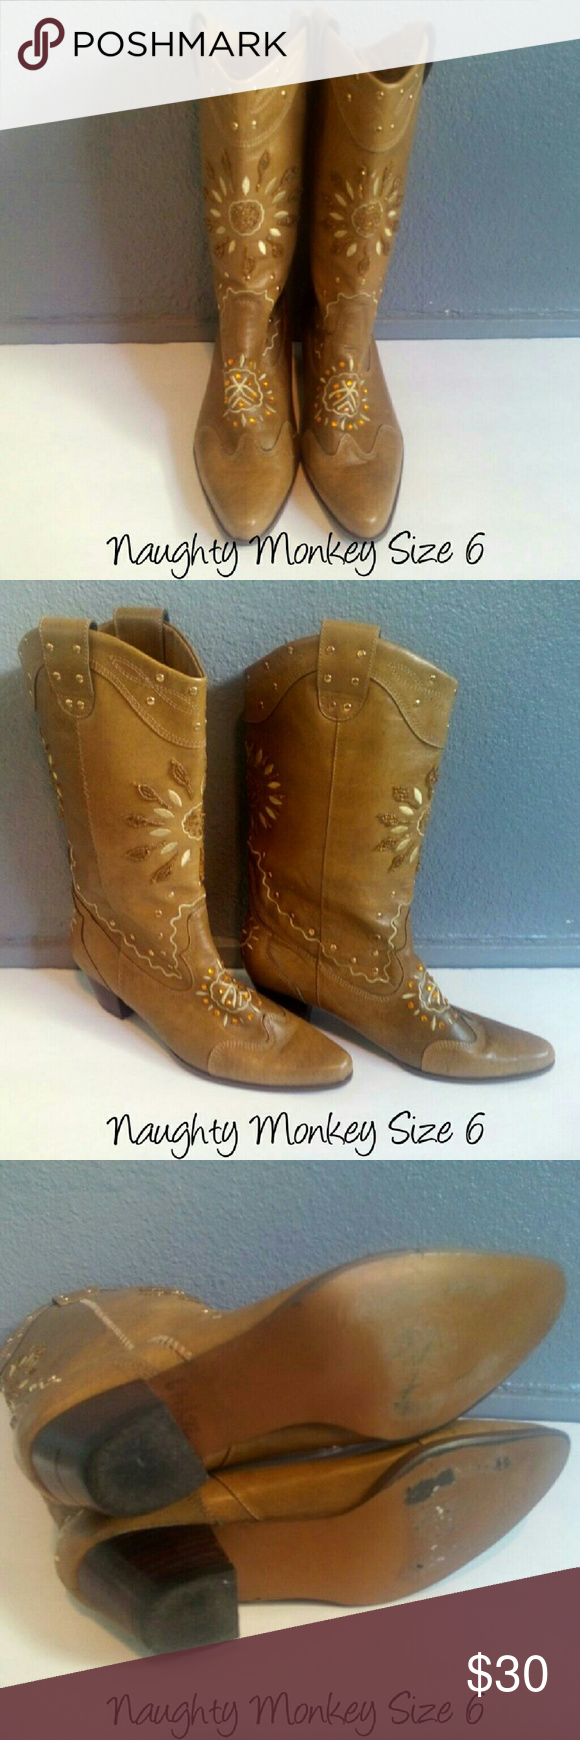 Naughty Monkey Cowgirl Boots Gently worn, flaw shown in